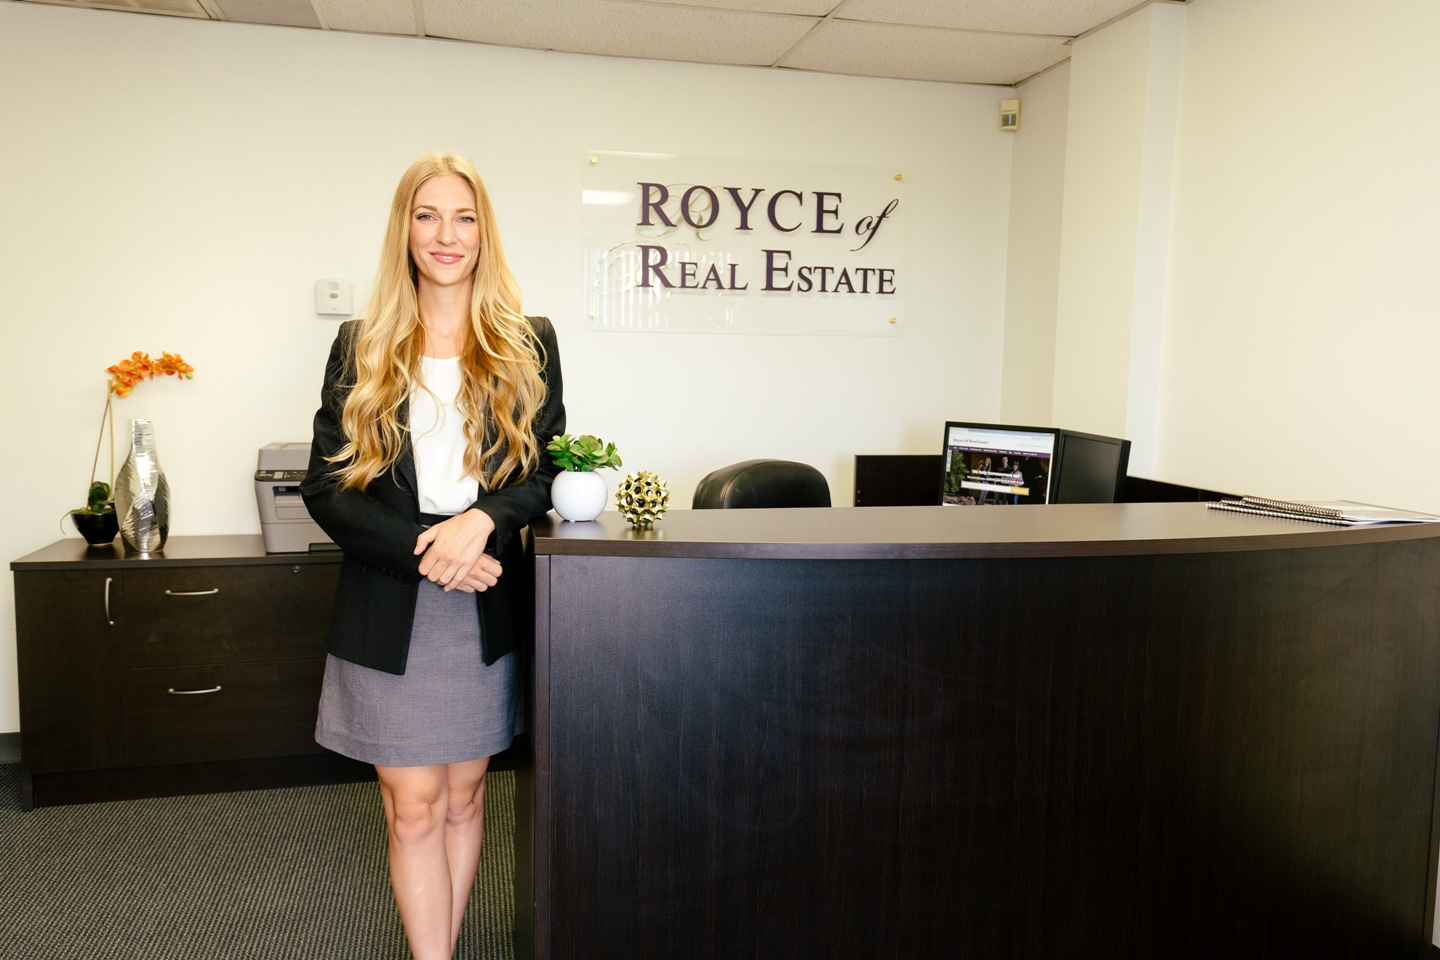 royce of real estate office